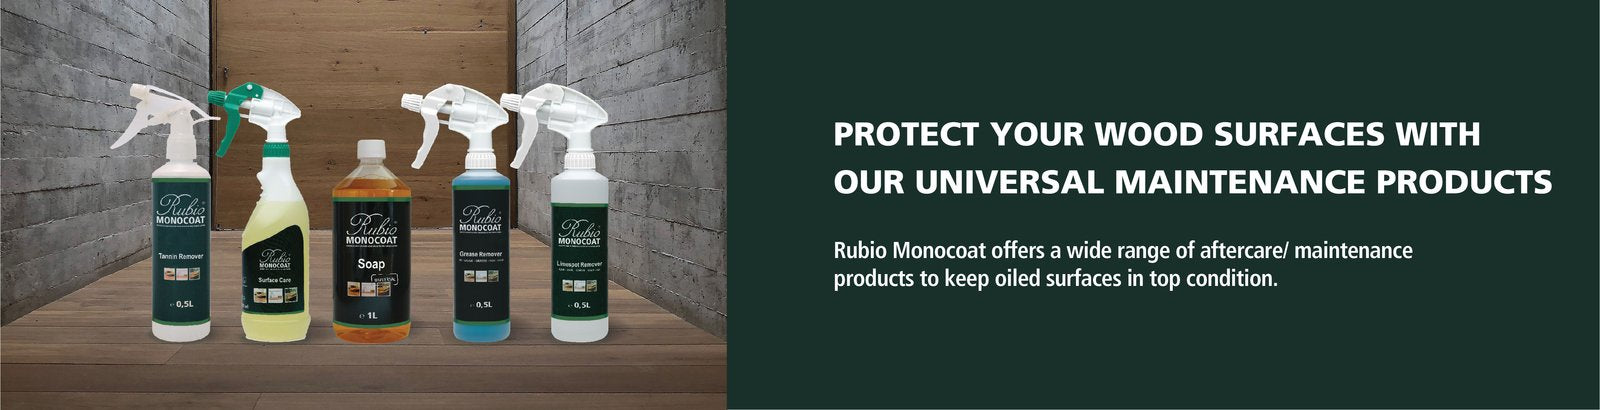 Protect Your Wood - With our universal maintenance products